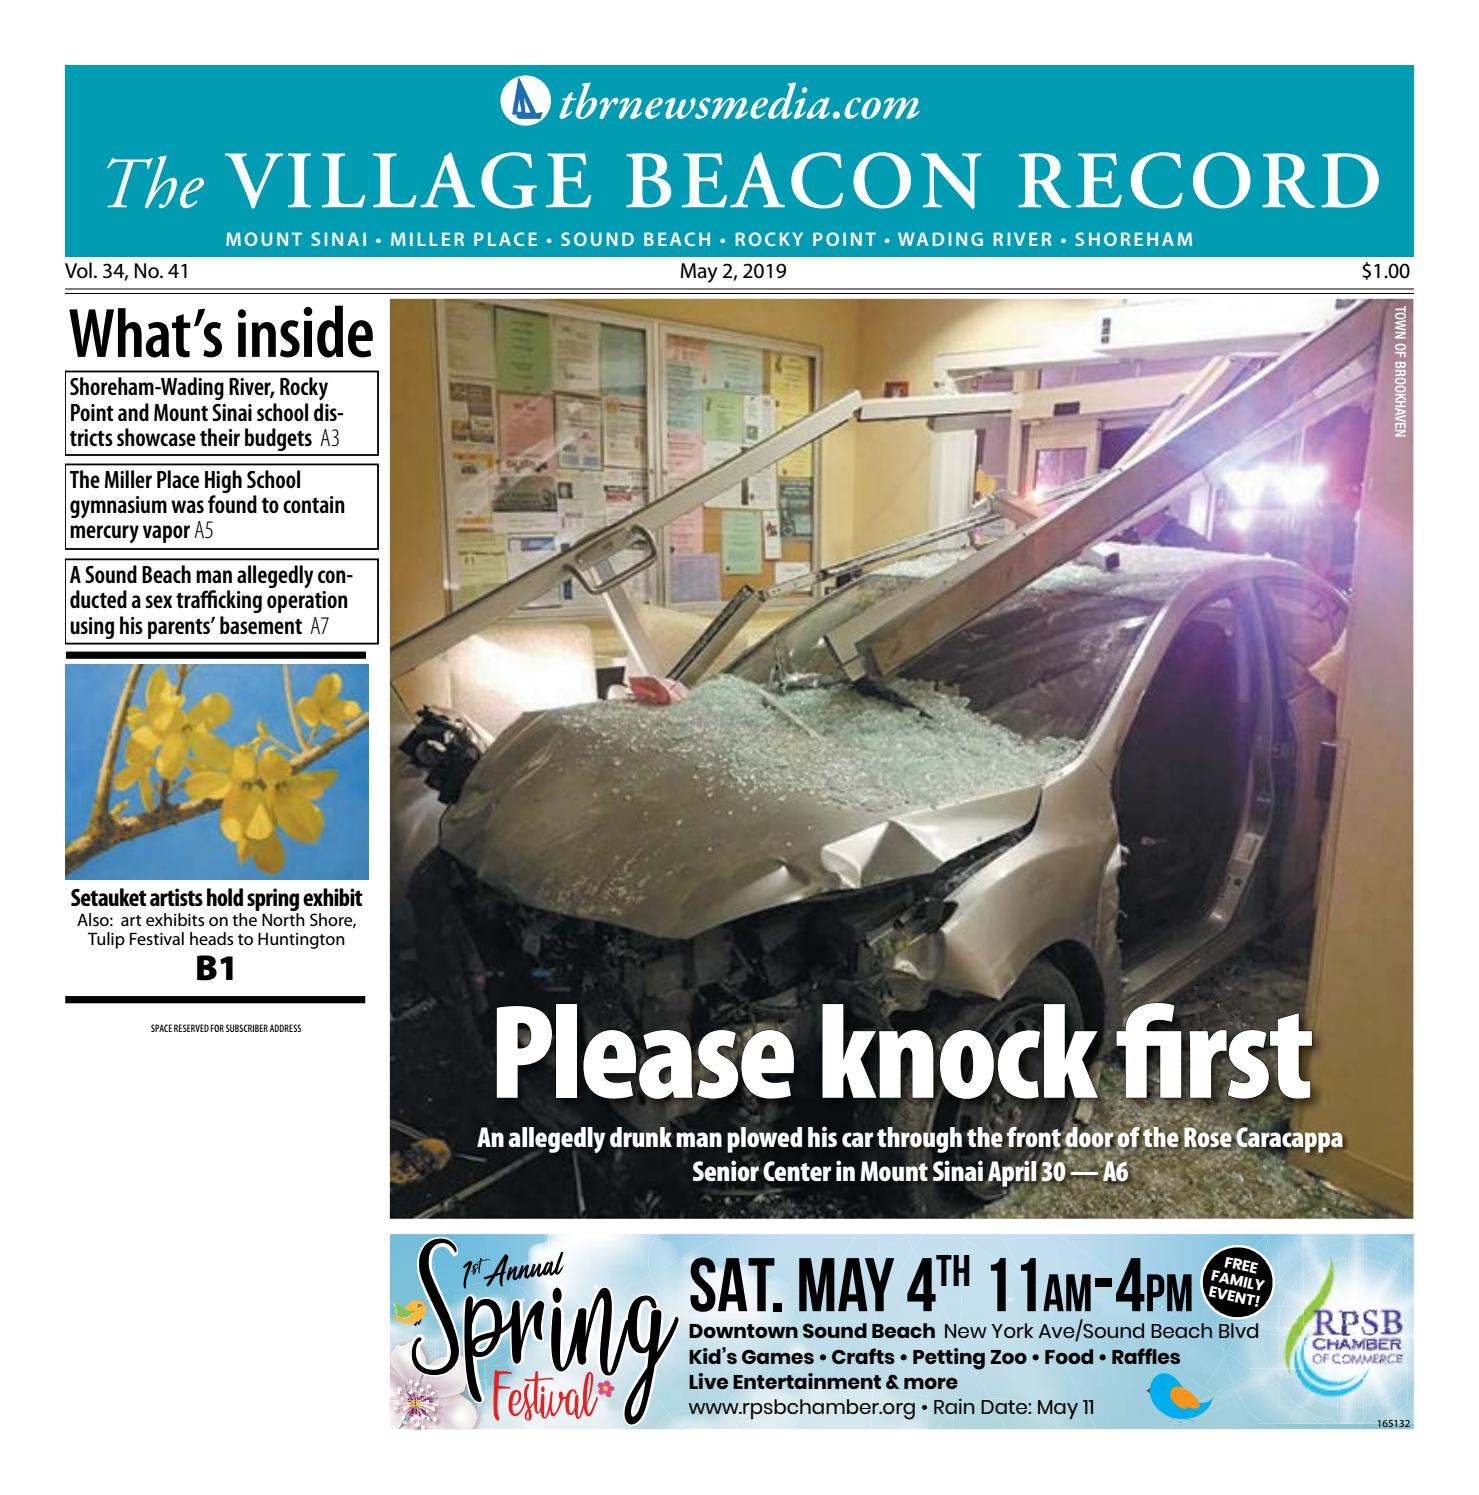 The Village Beacon Record - May 2, 2019 by TBR News Media